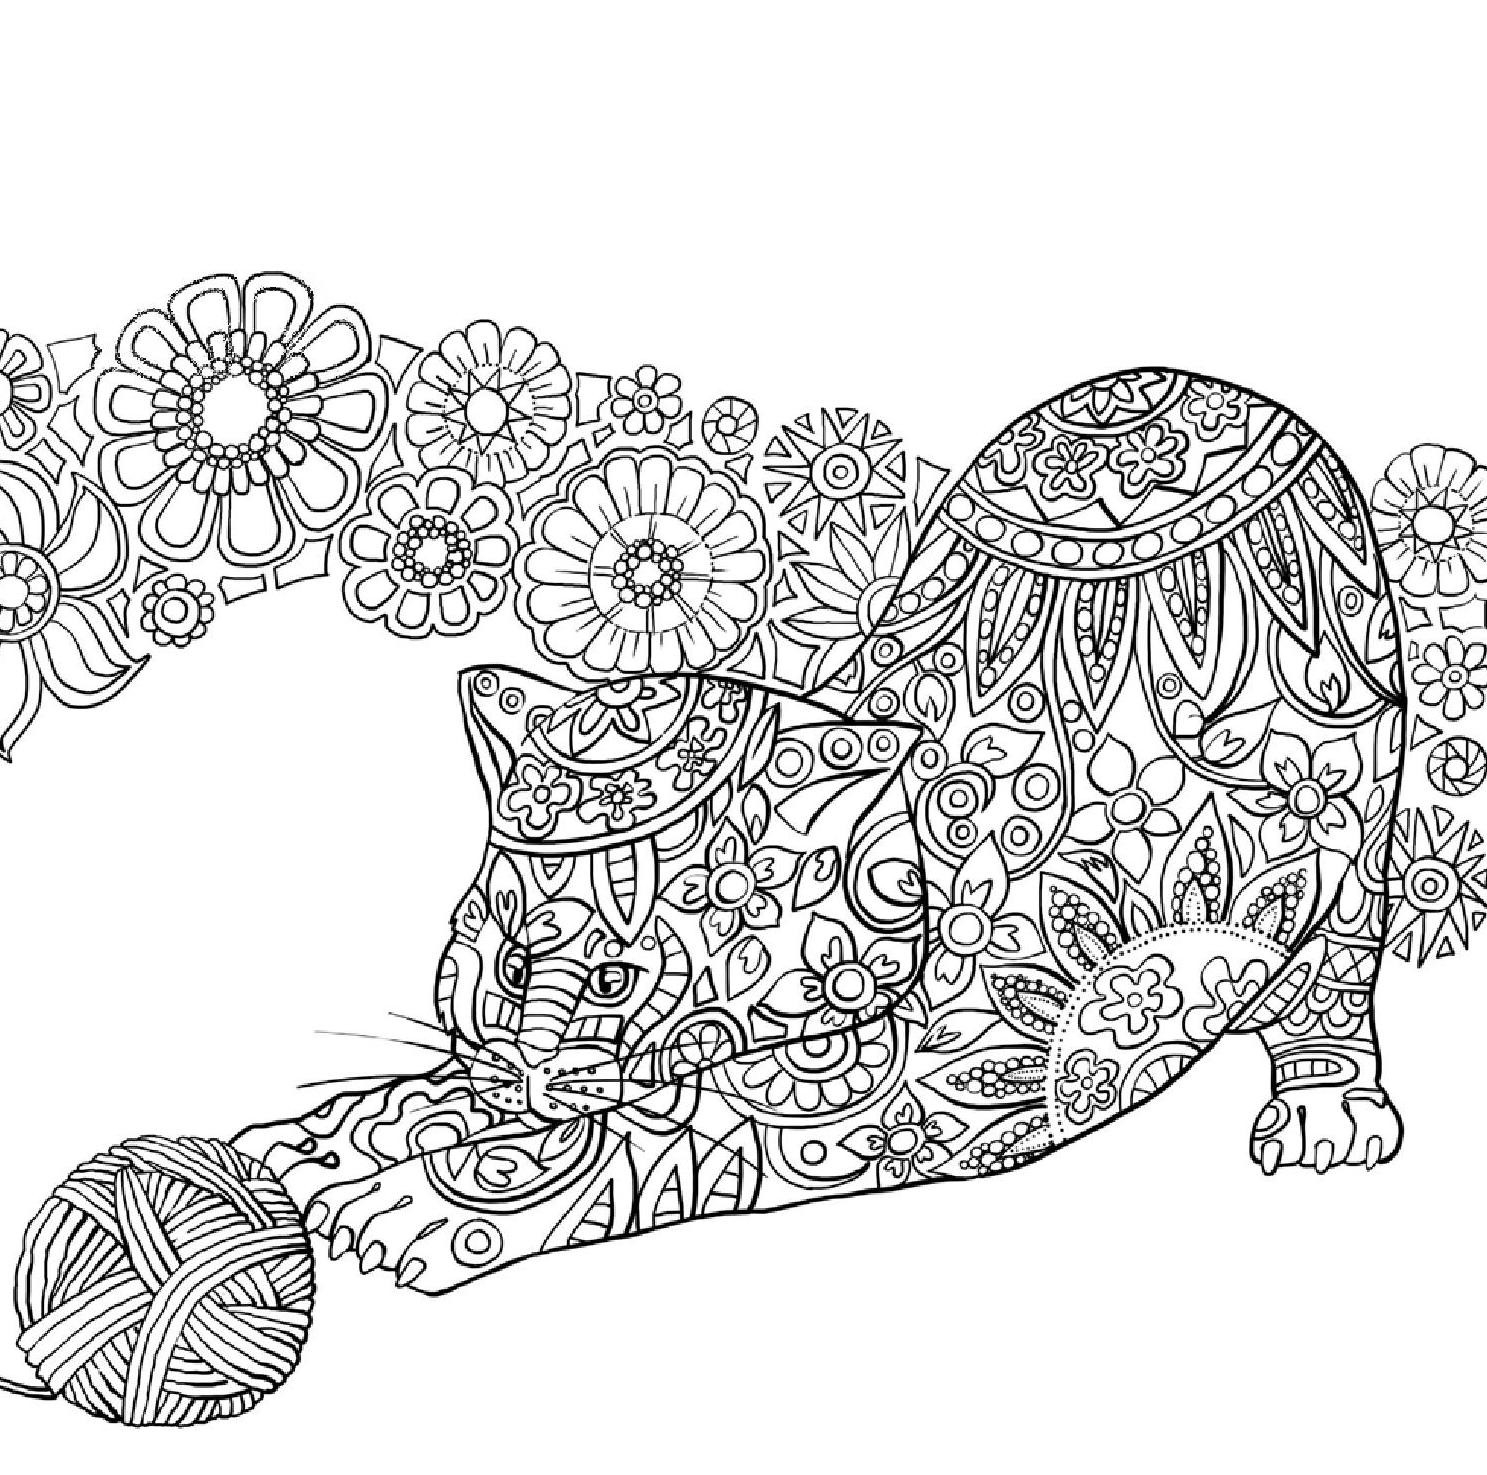 Realistic Cat Coloring Pages  Gallery 4g - Free Download